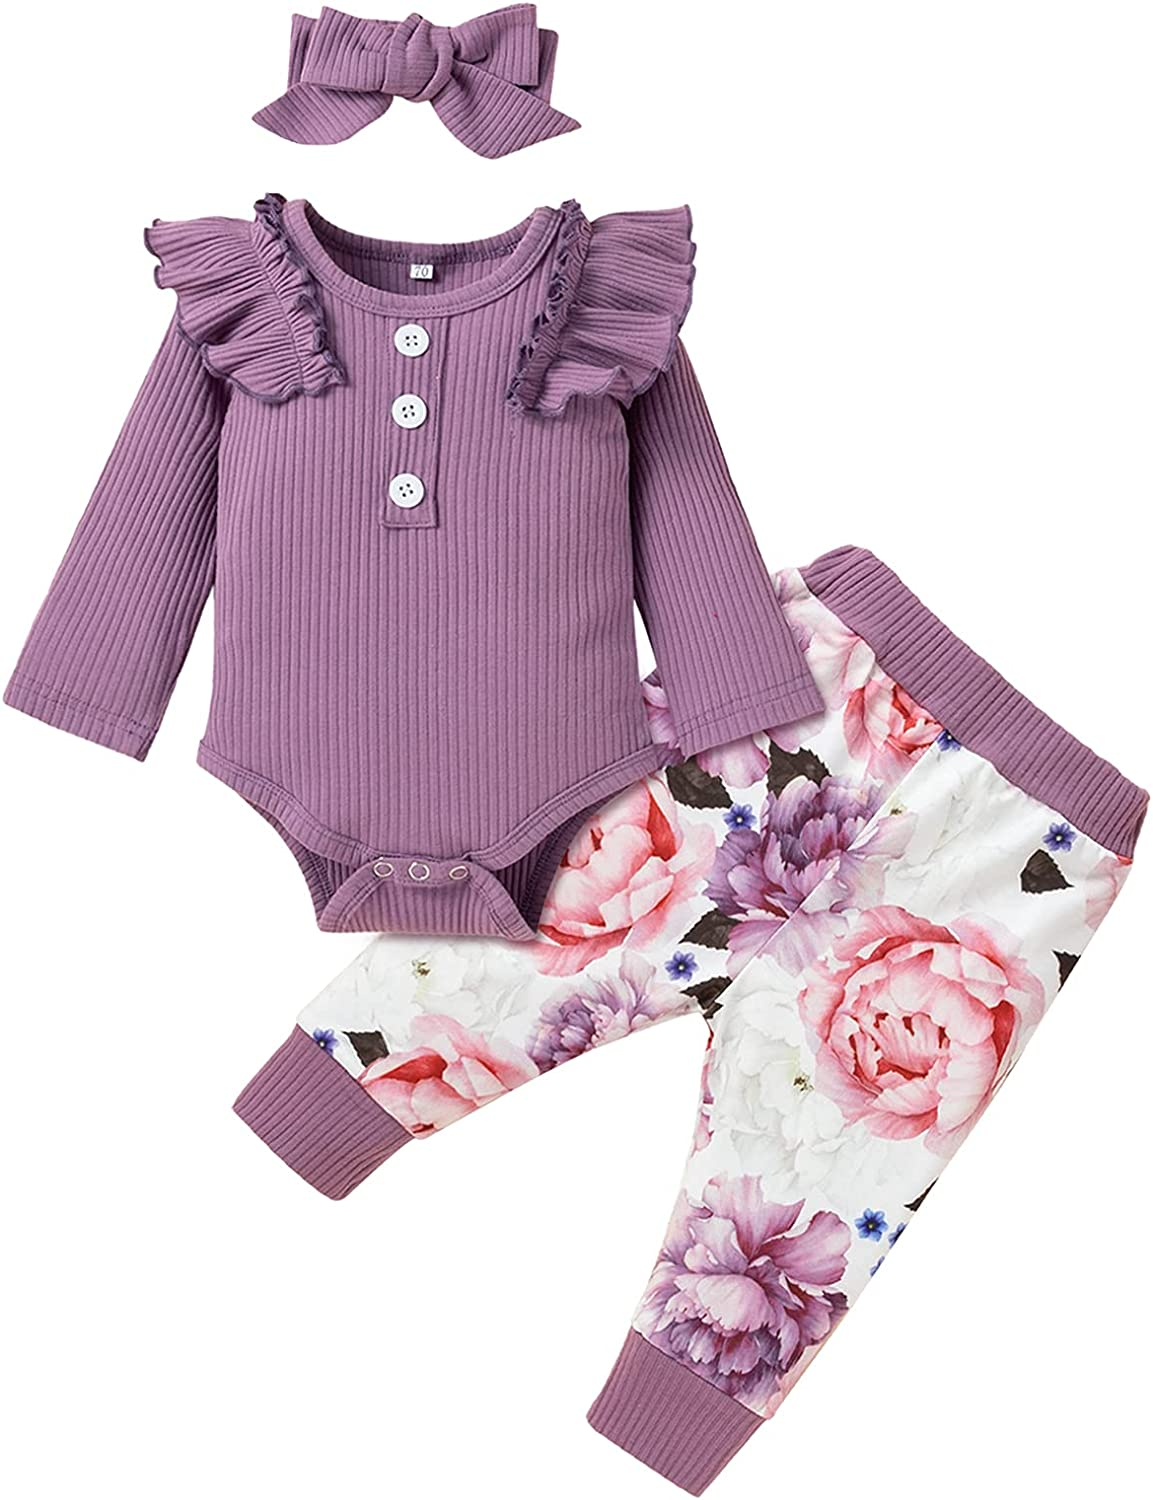 Baby Girl Clothes Infant Girl Pants Set Ruffle Long Sleeve Romper Floral Pants with Headband 3Pcs Set